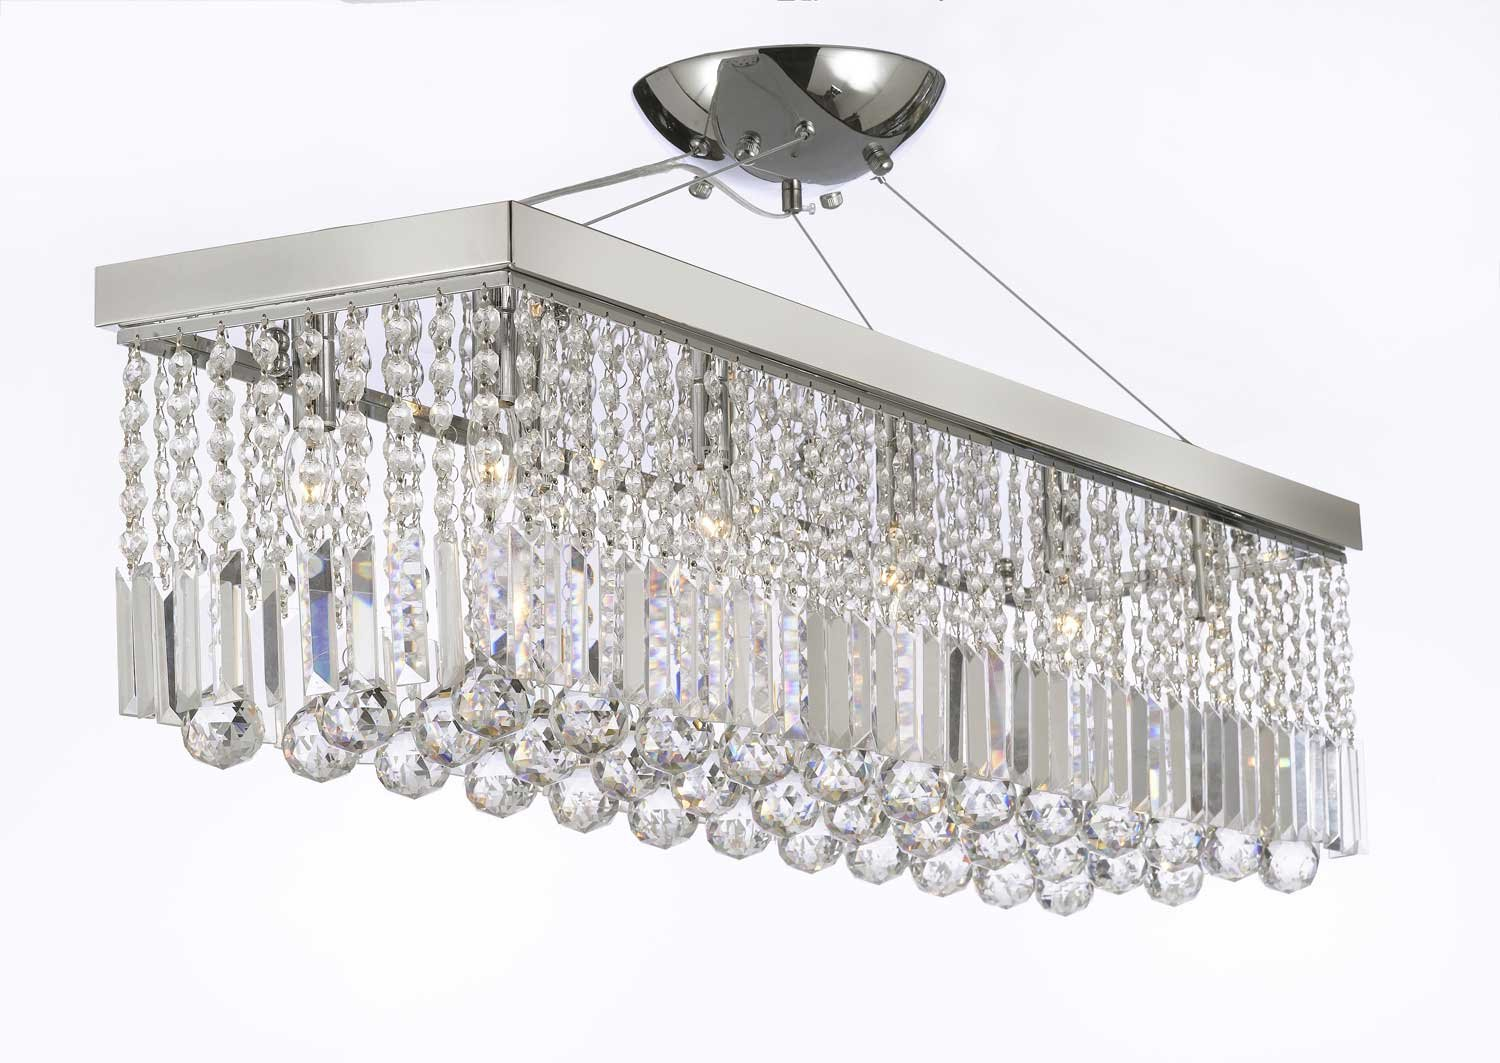 10 Light 40 Contemporary Crystal Chandelier Rectangular Chandeliers How To Install A And Dimmer Switch Apps Directories Lighting Diy Tools